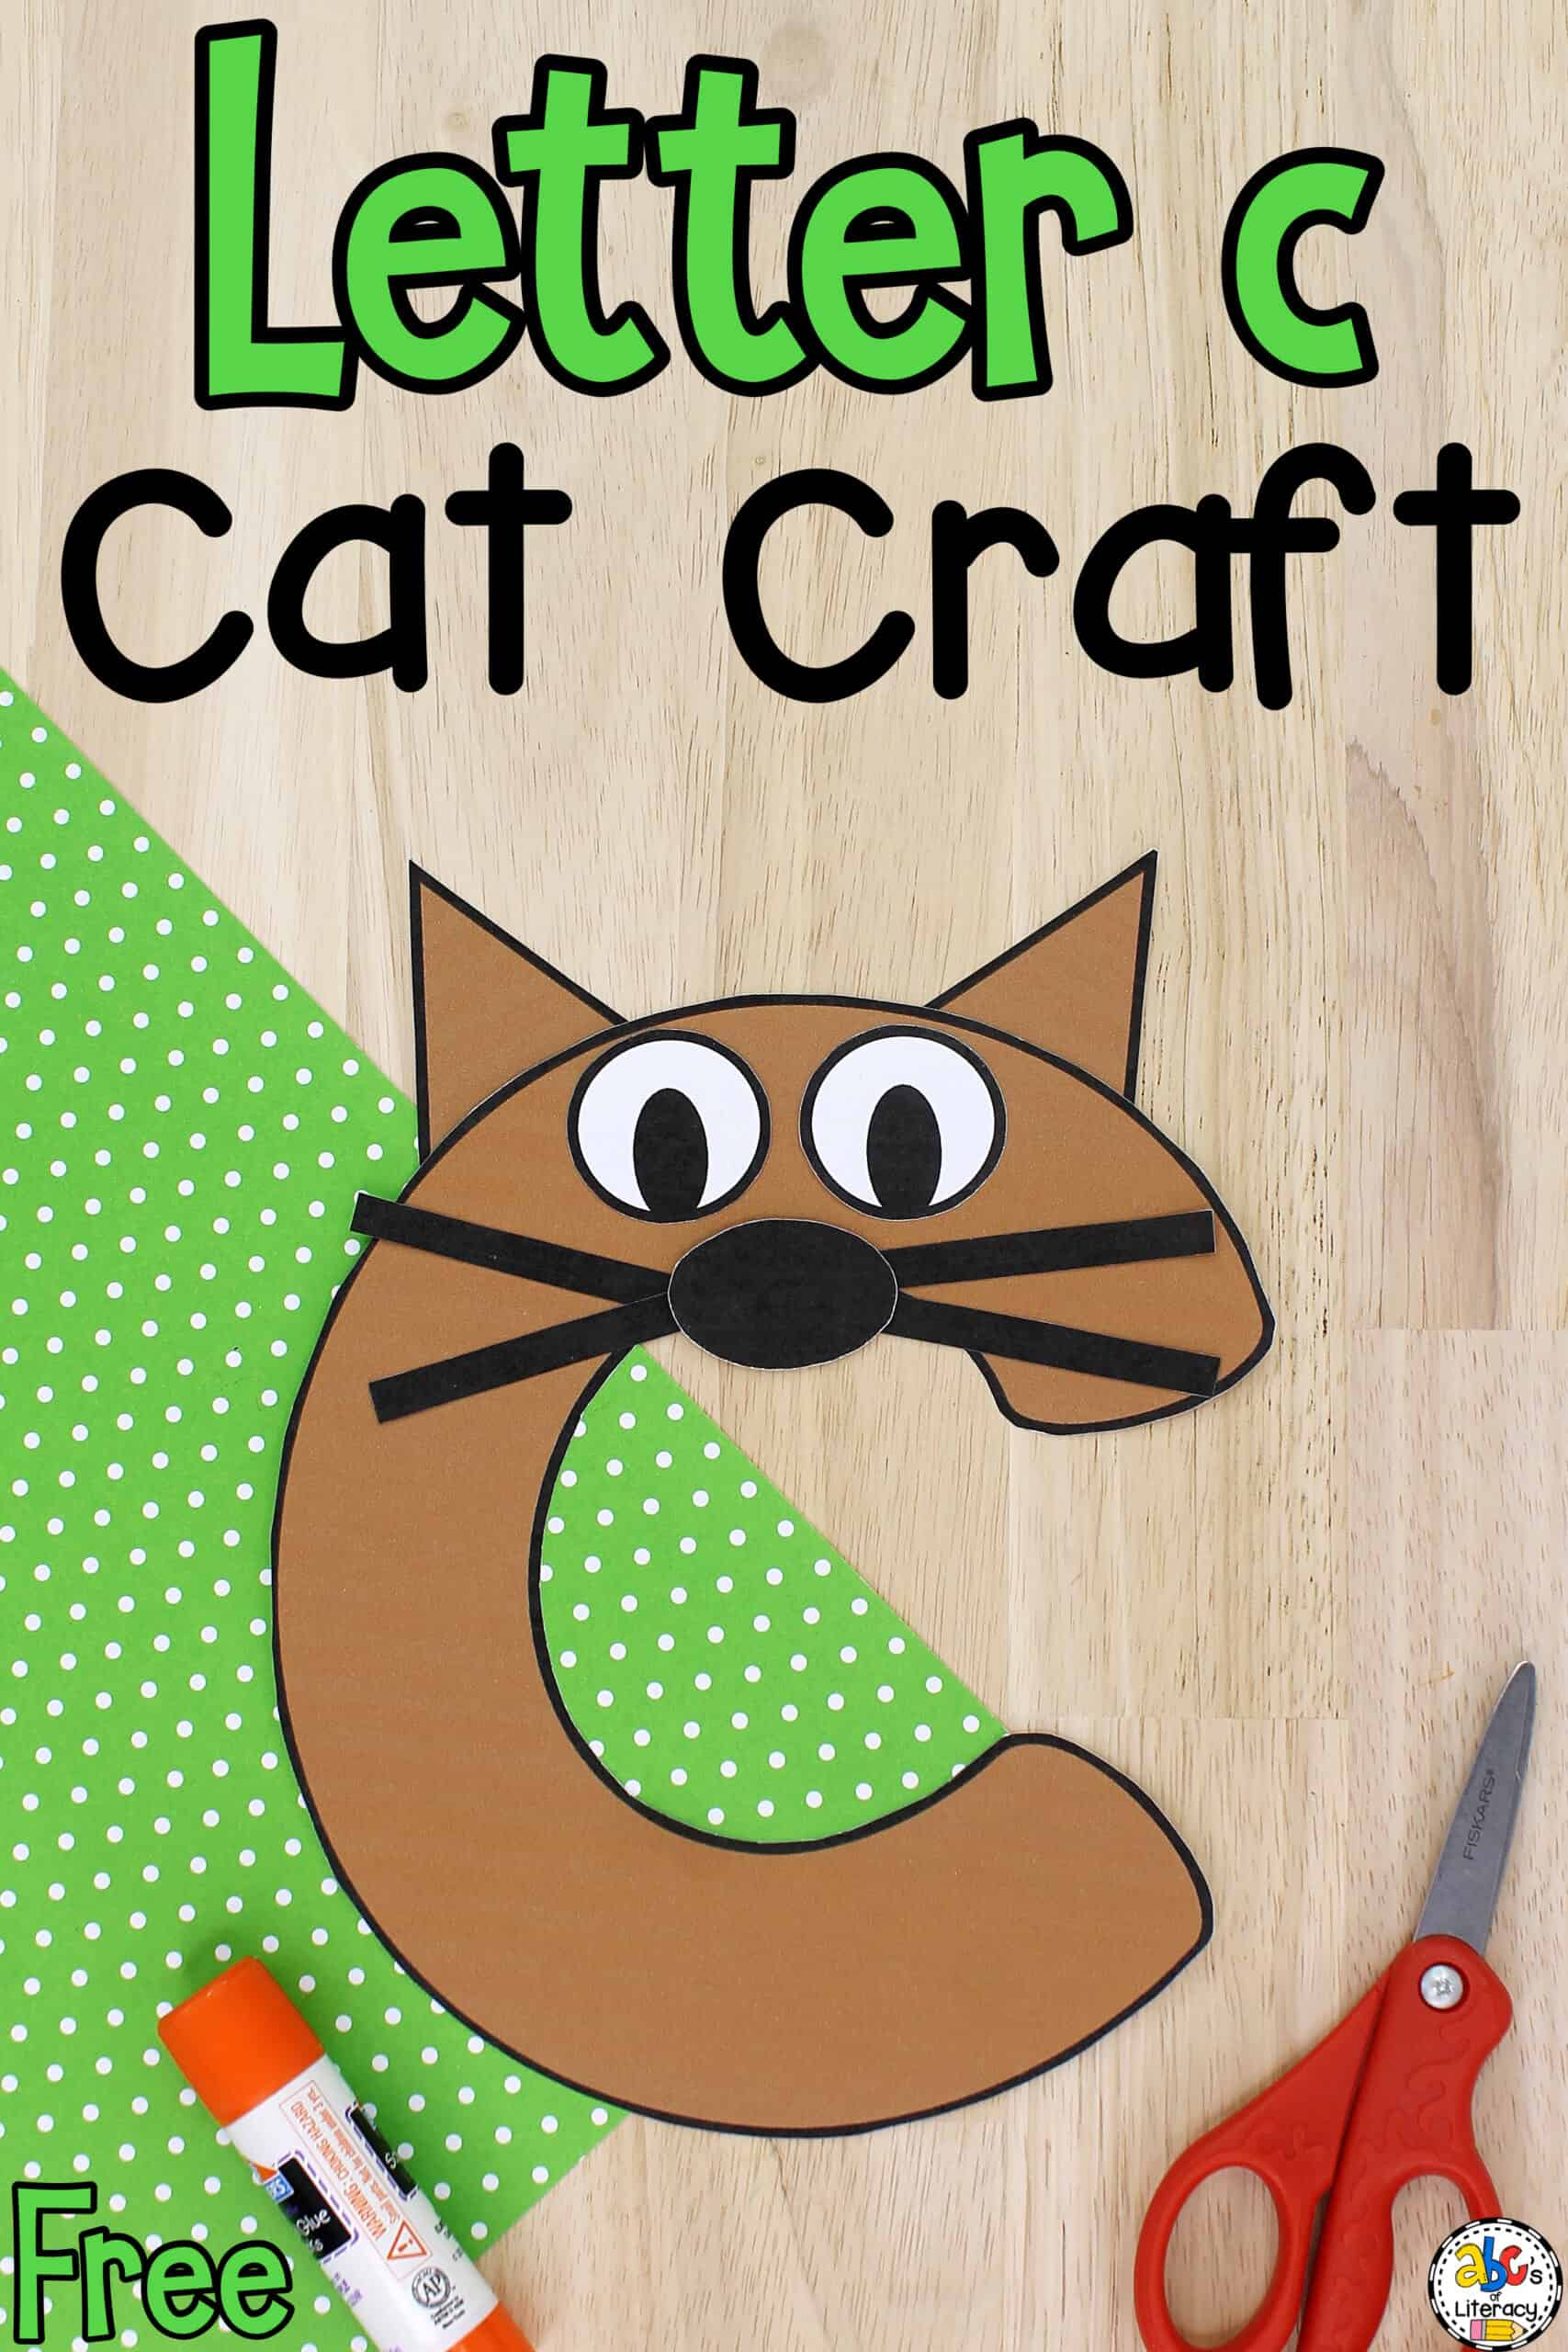 Letter C Cat Craft